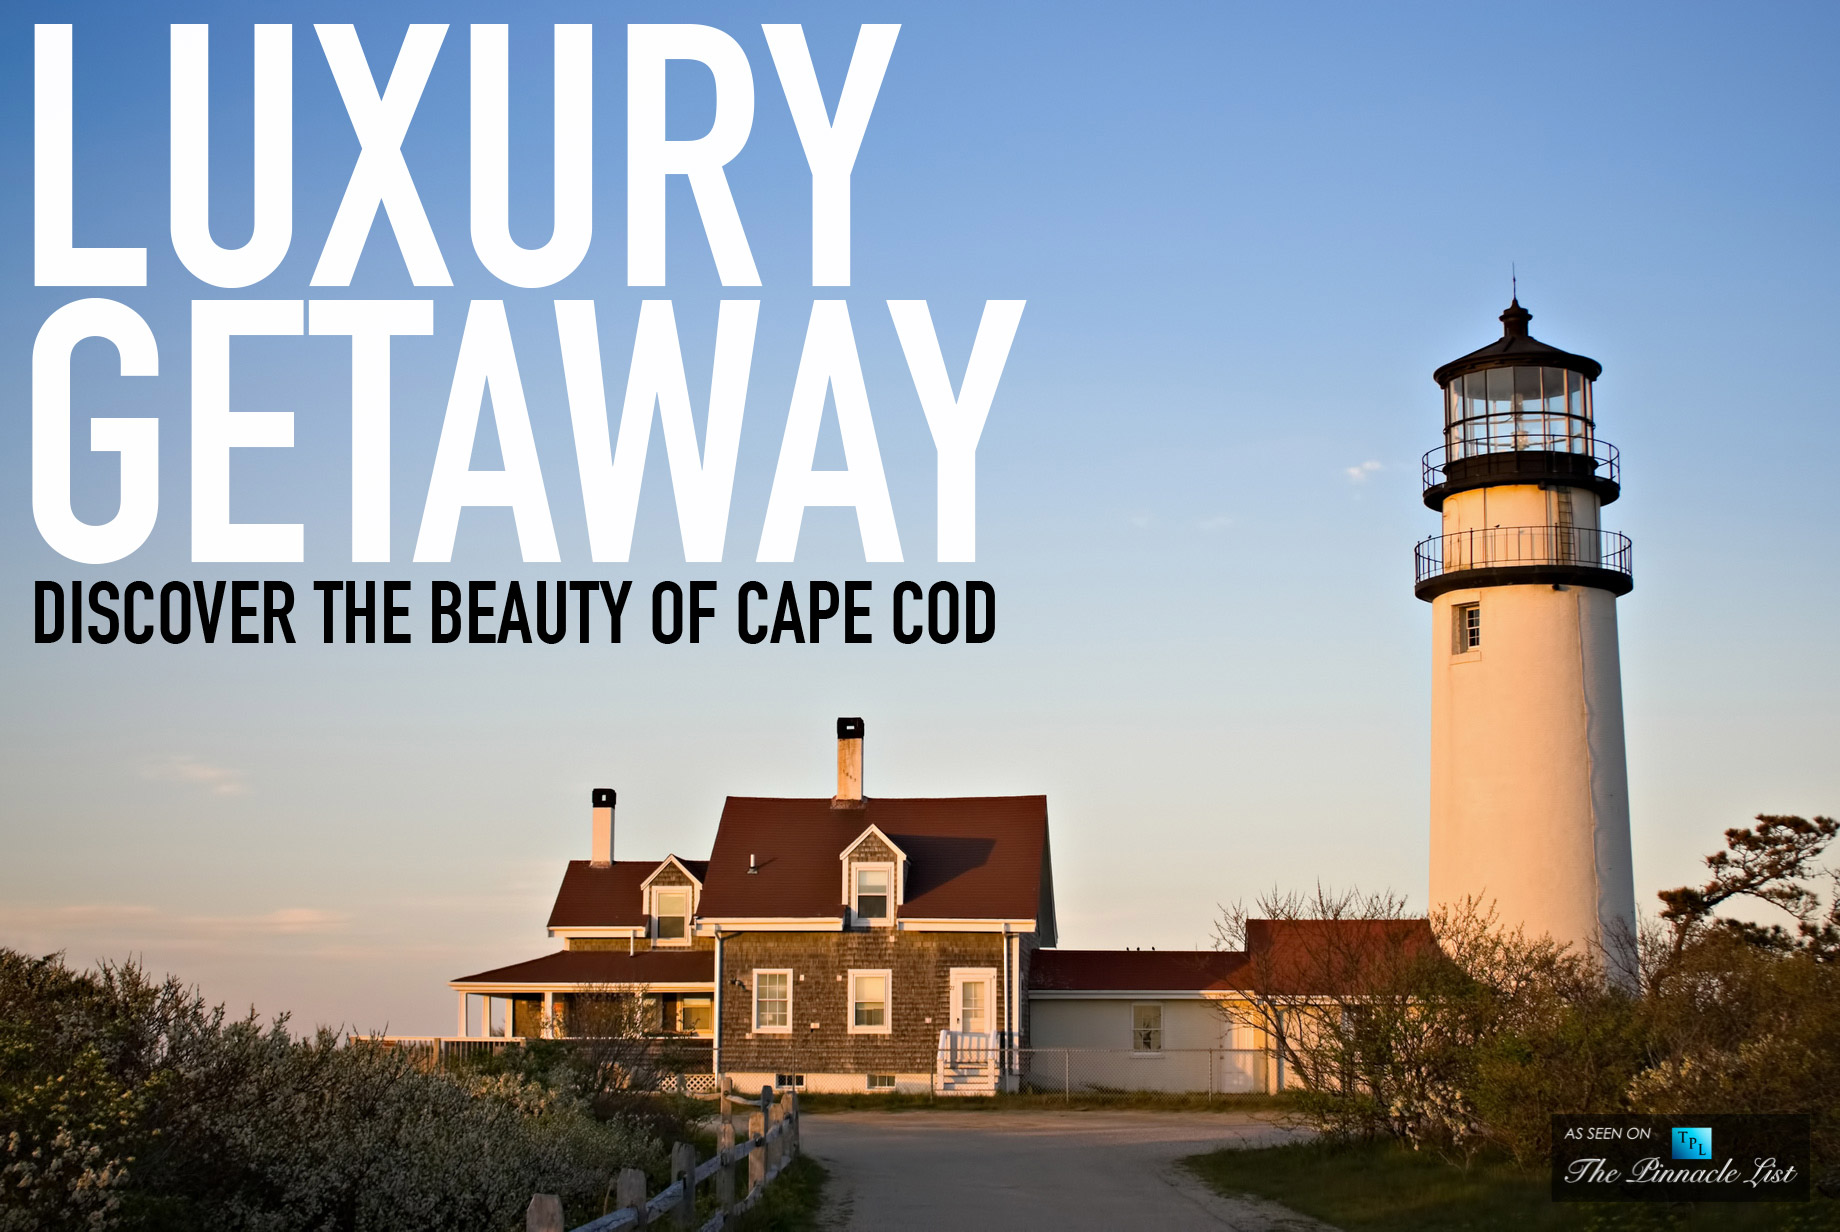 Luxury Getaway - Discover the Beauty of Cape Cod